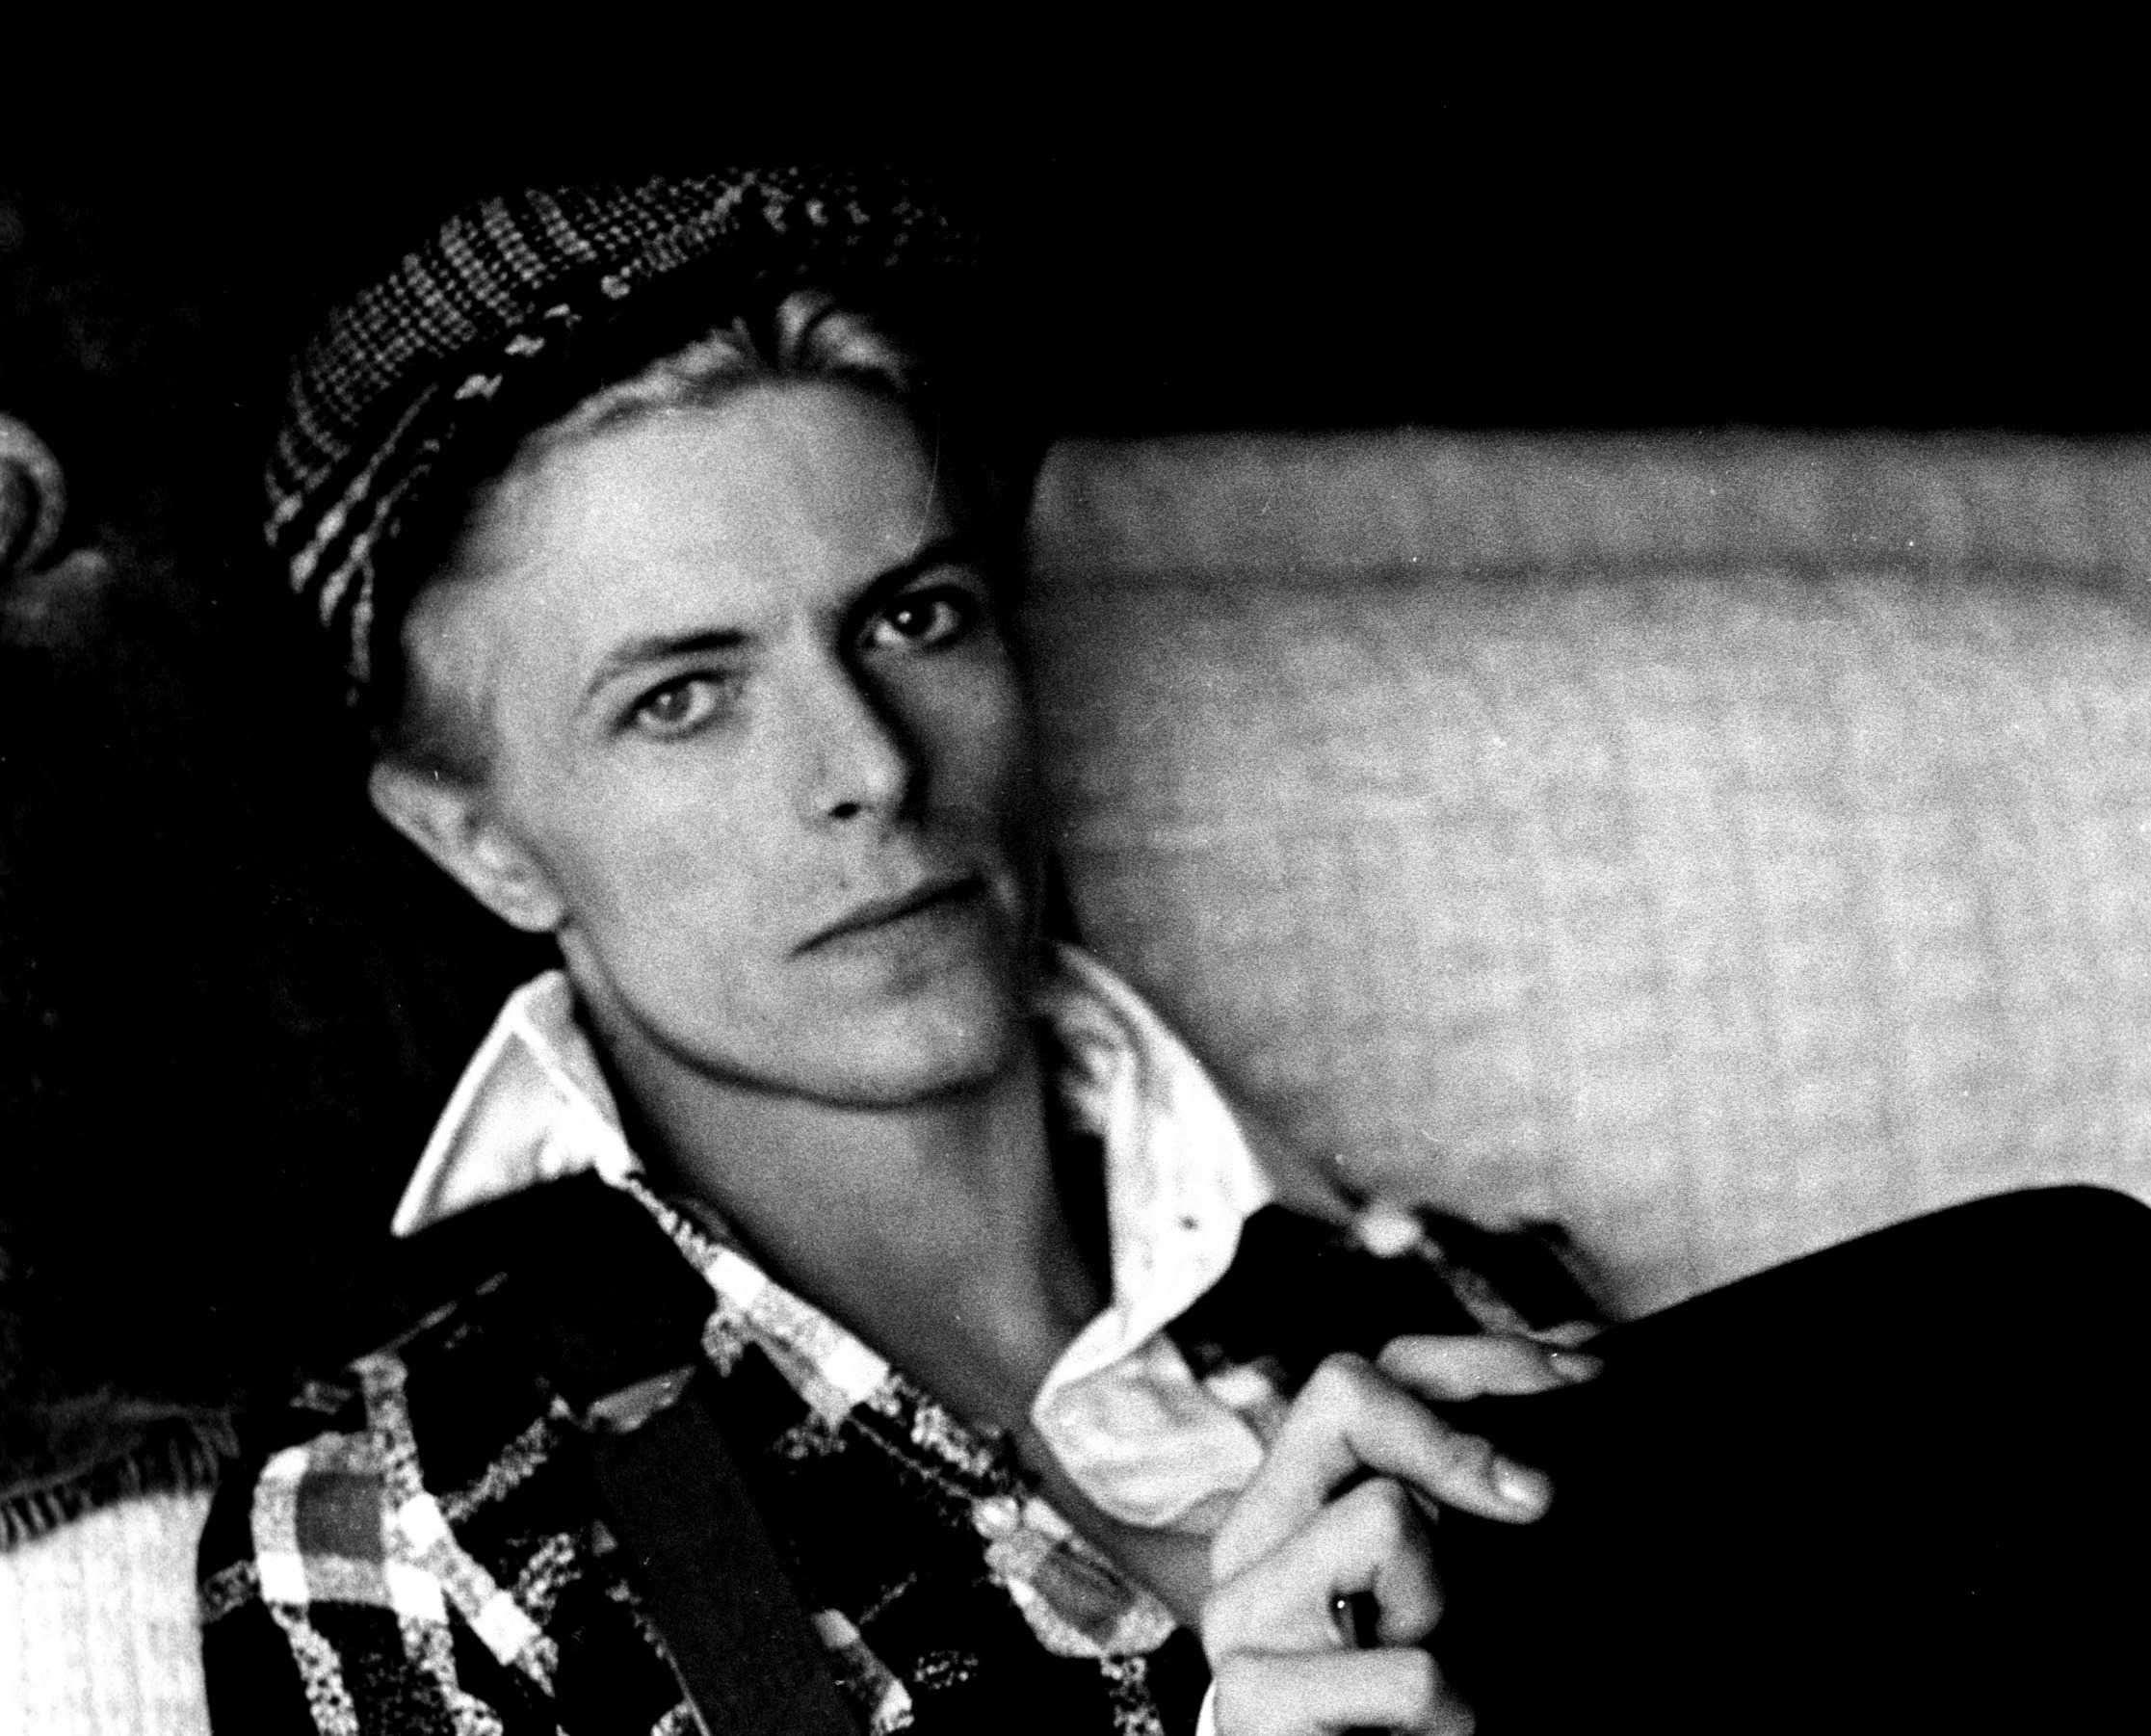 Bowie in LA home